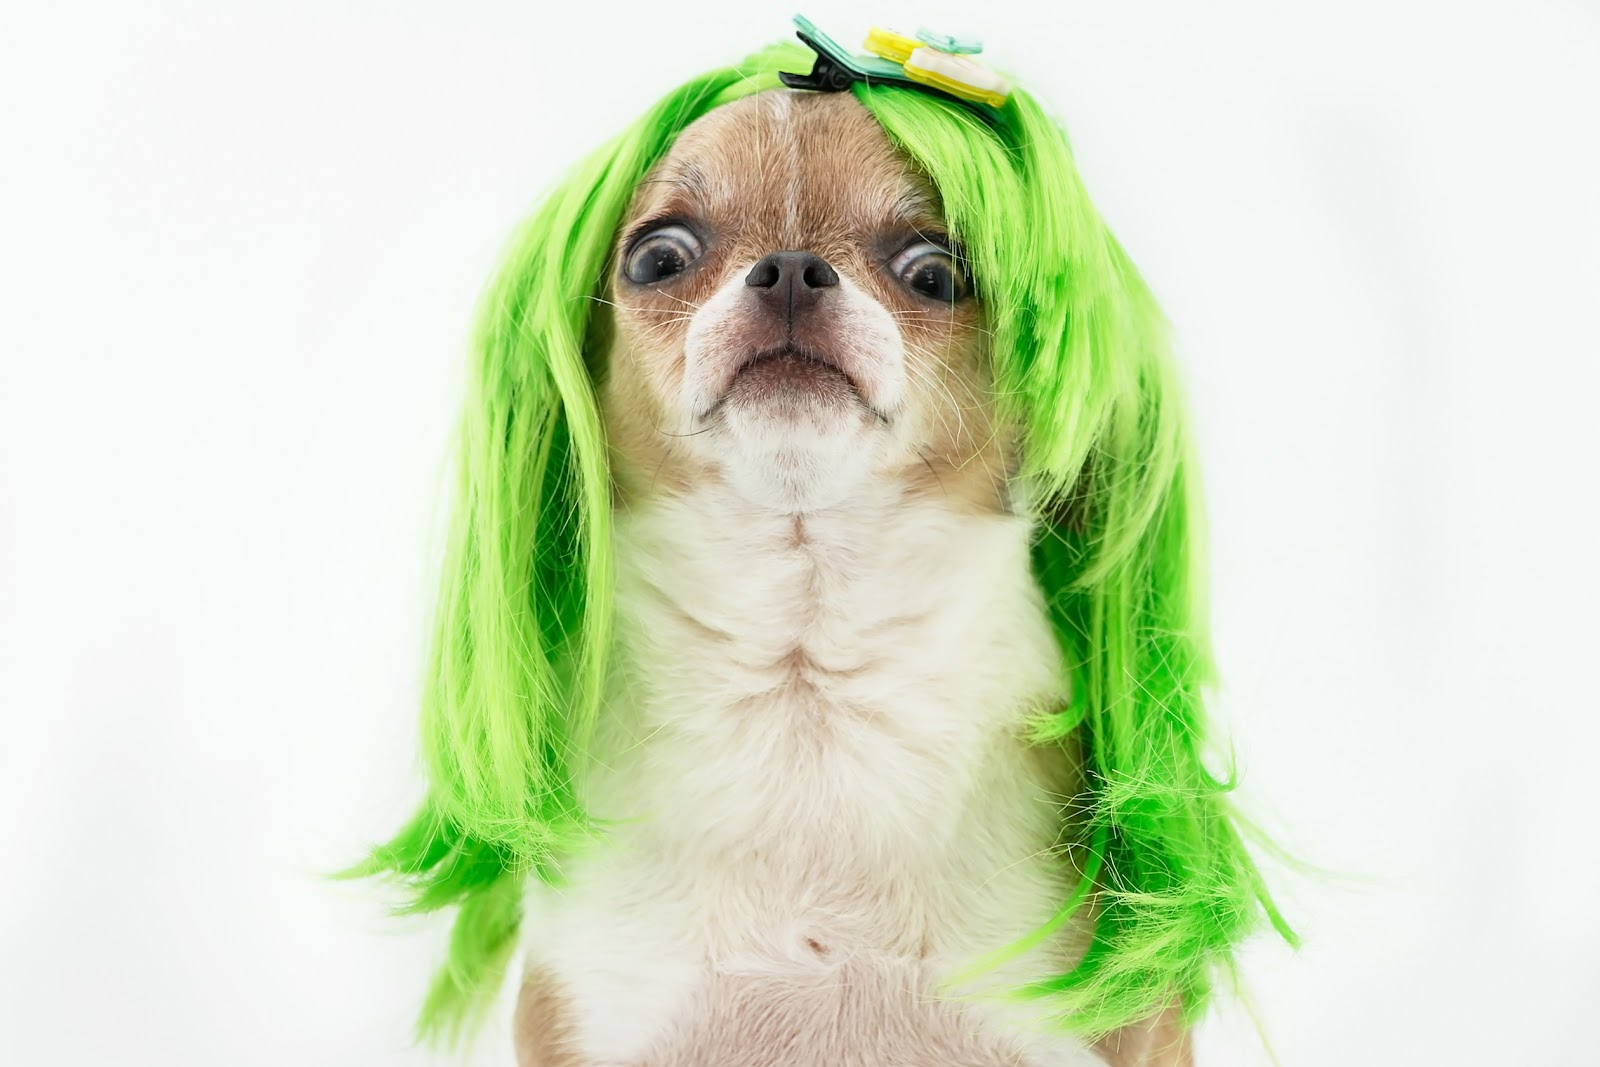 a chihuahua looking shocked with a bright green wig on its head